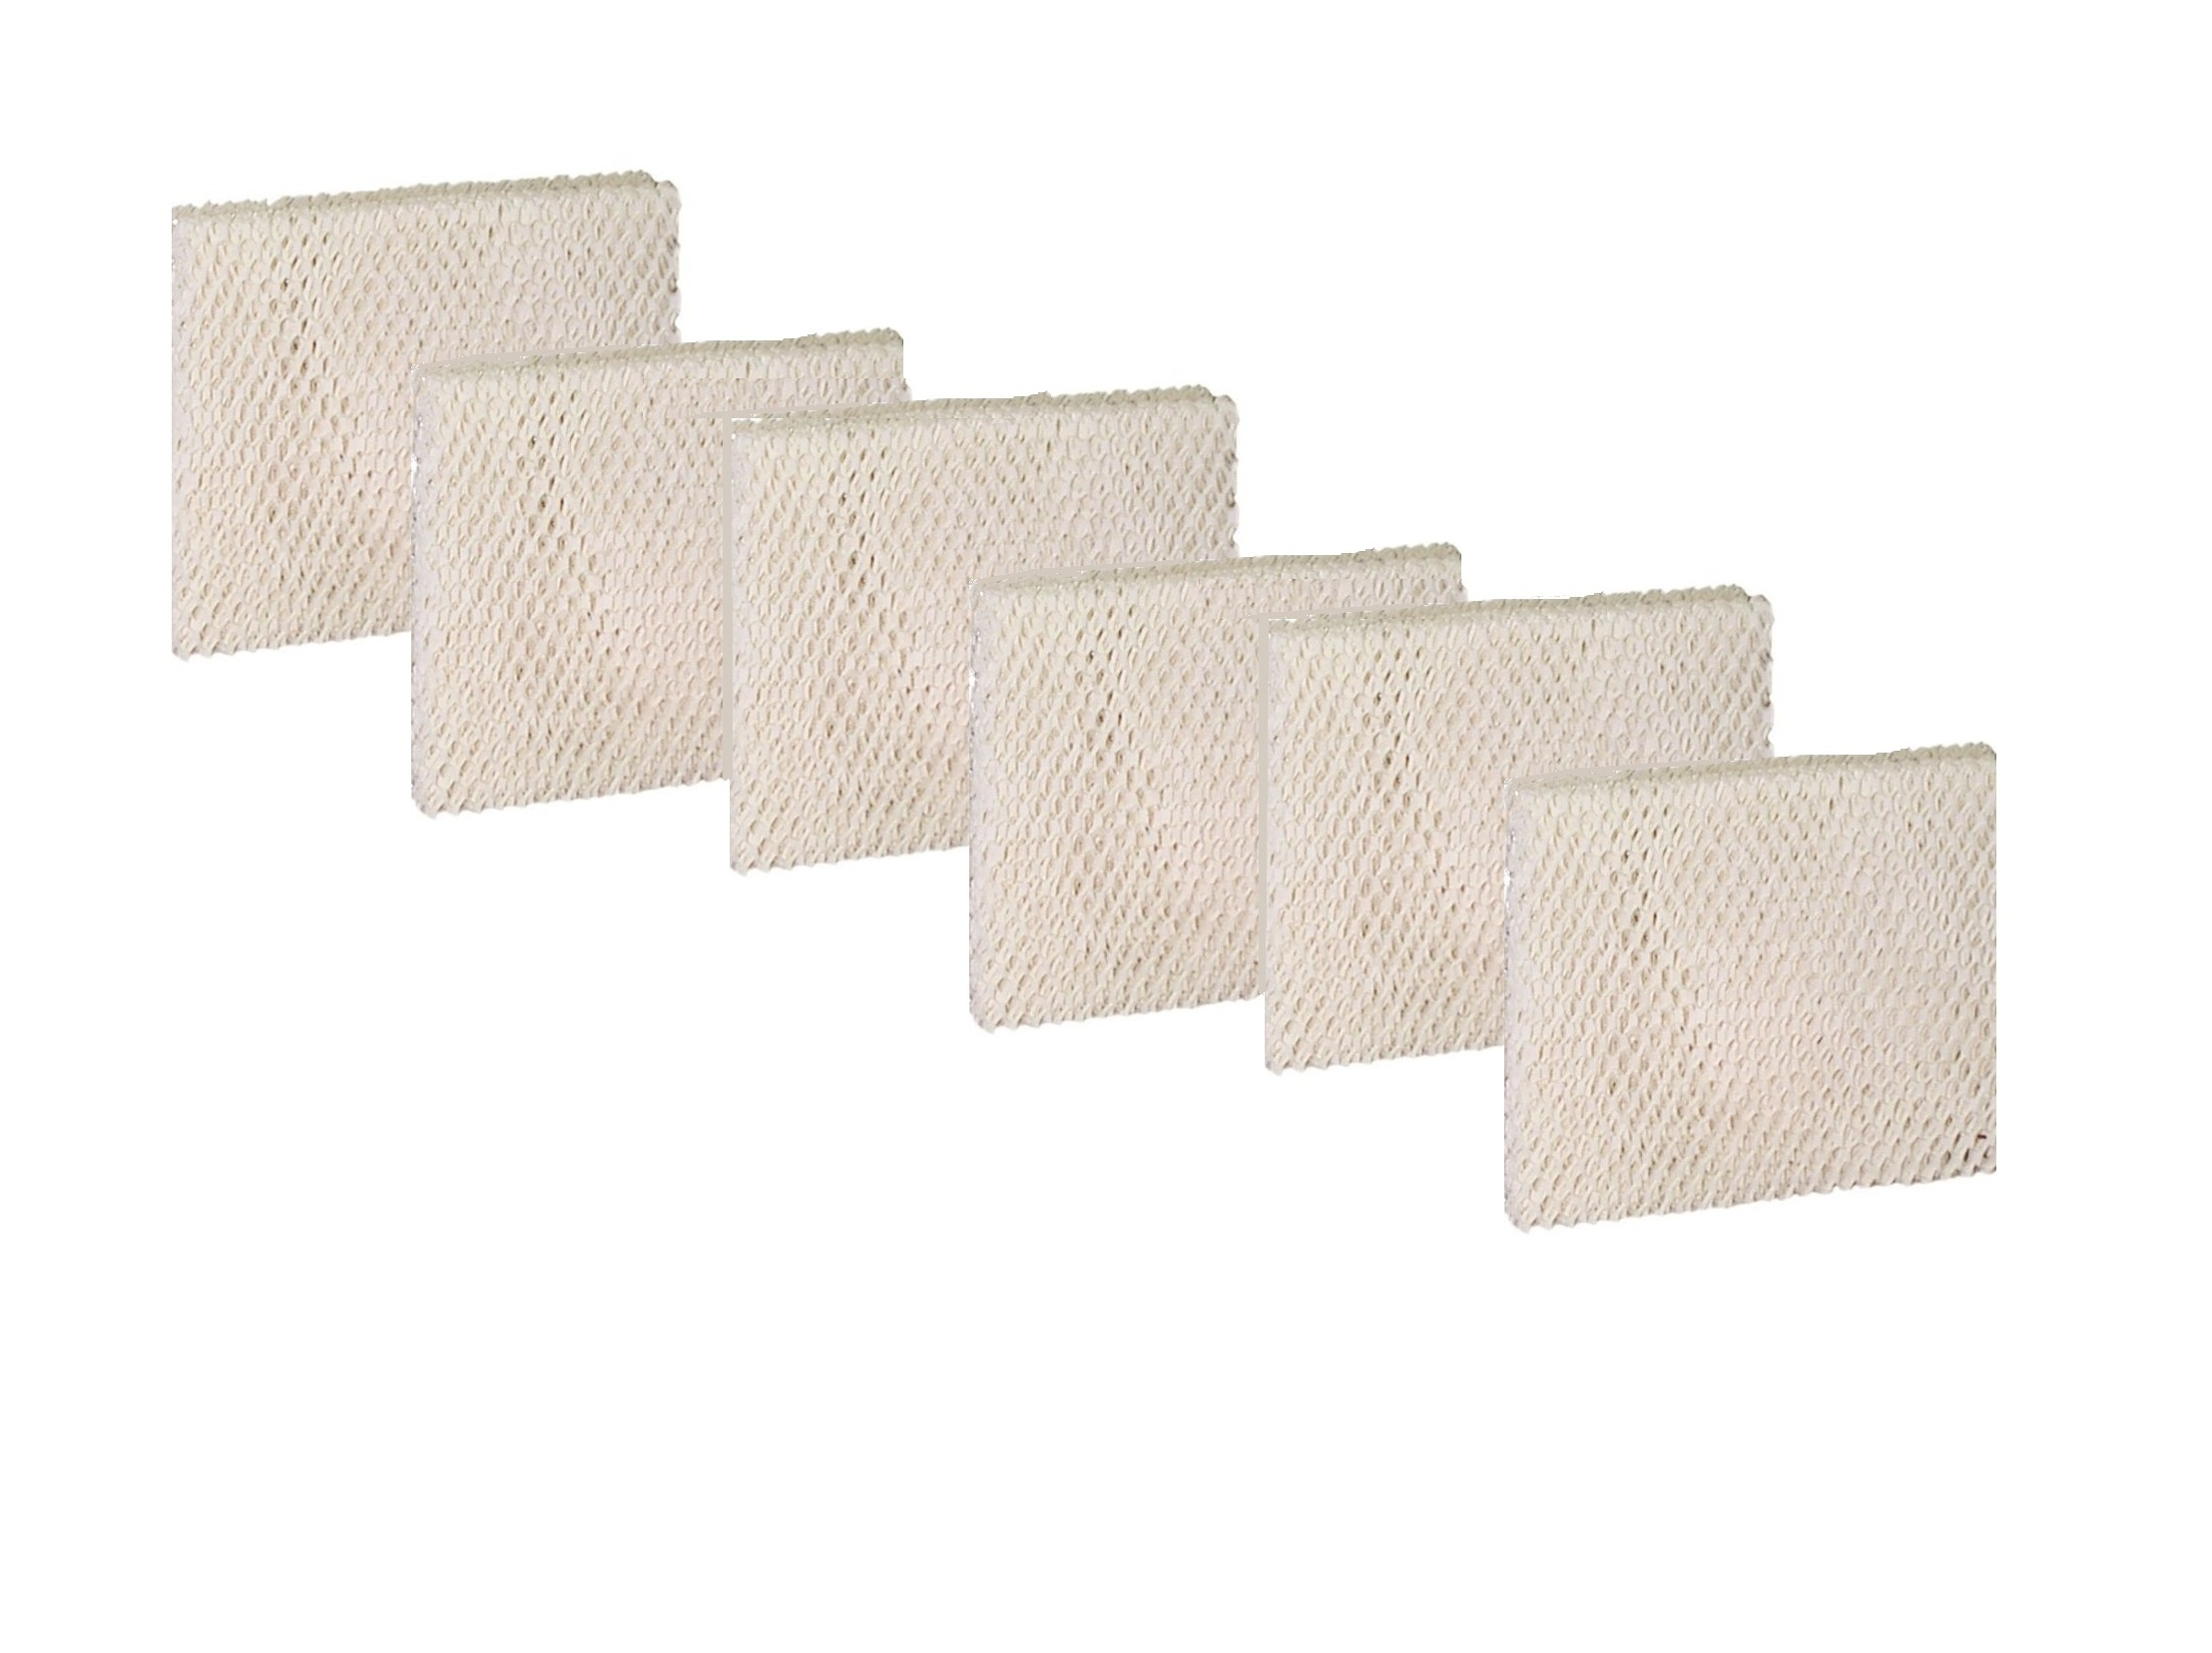 HWF25 Holmes Comparable Humidifier Filter by Tier1 (6 Pack) TIER1_HMF1620_6_PACK